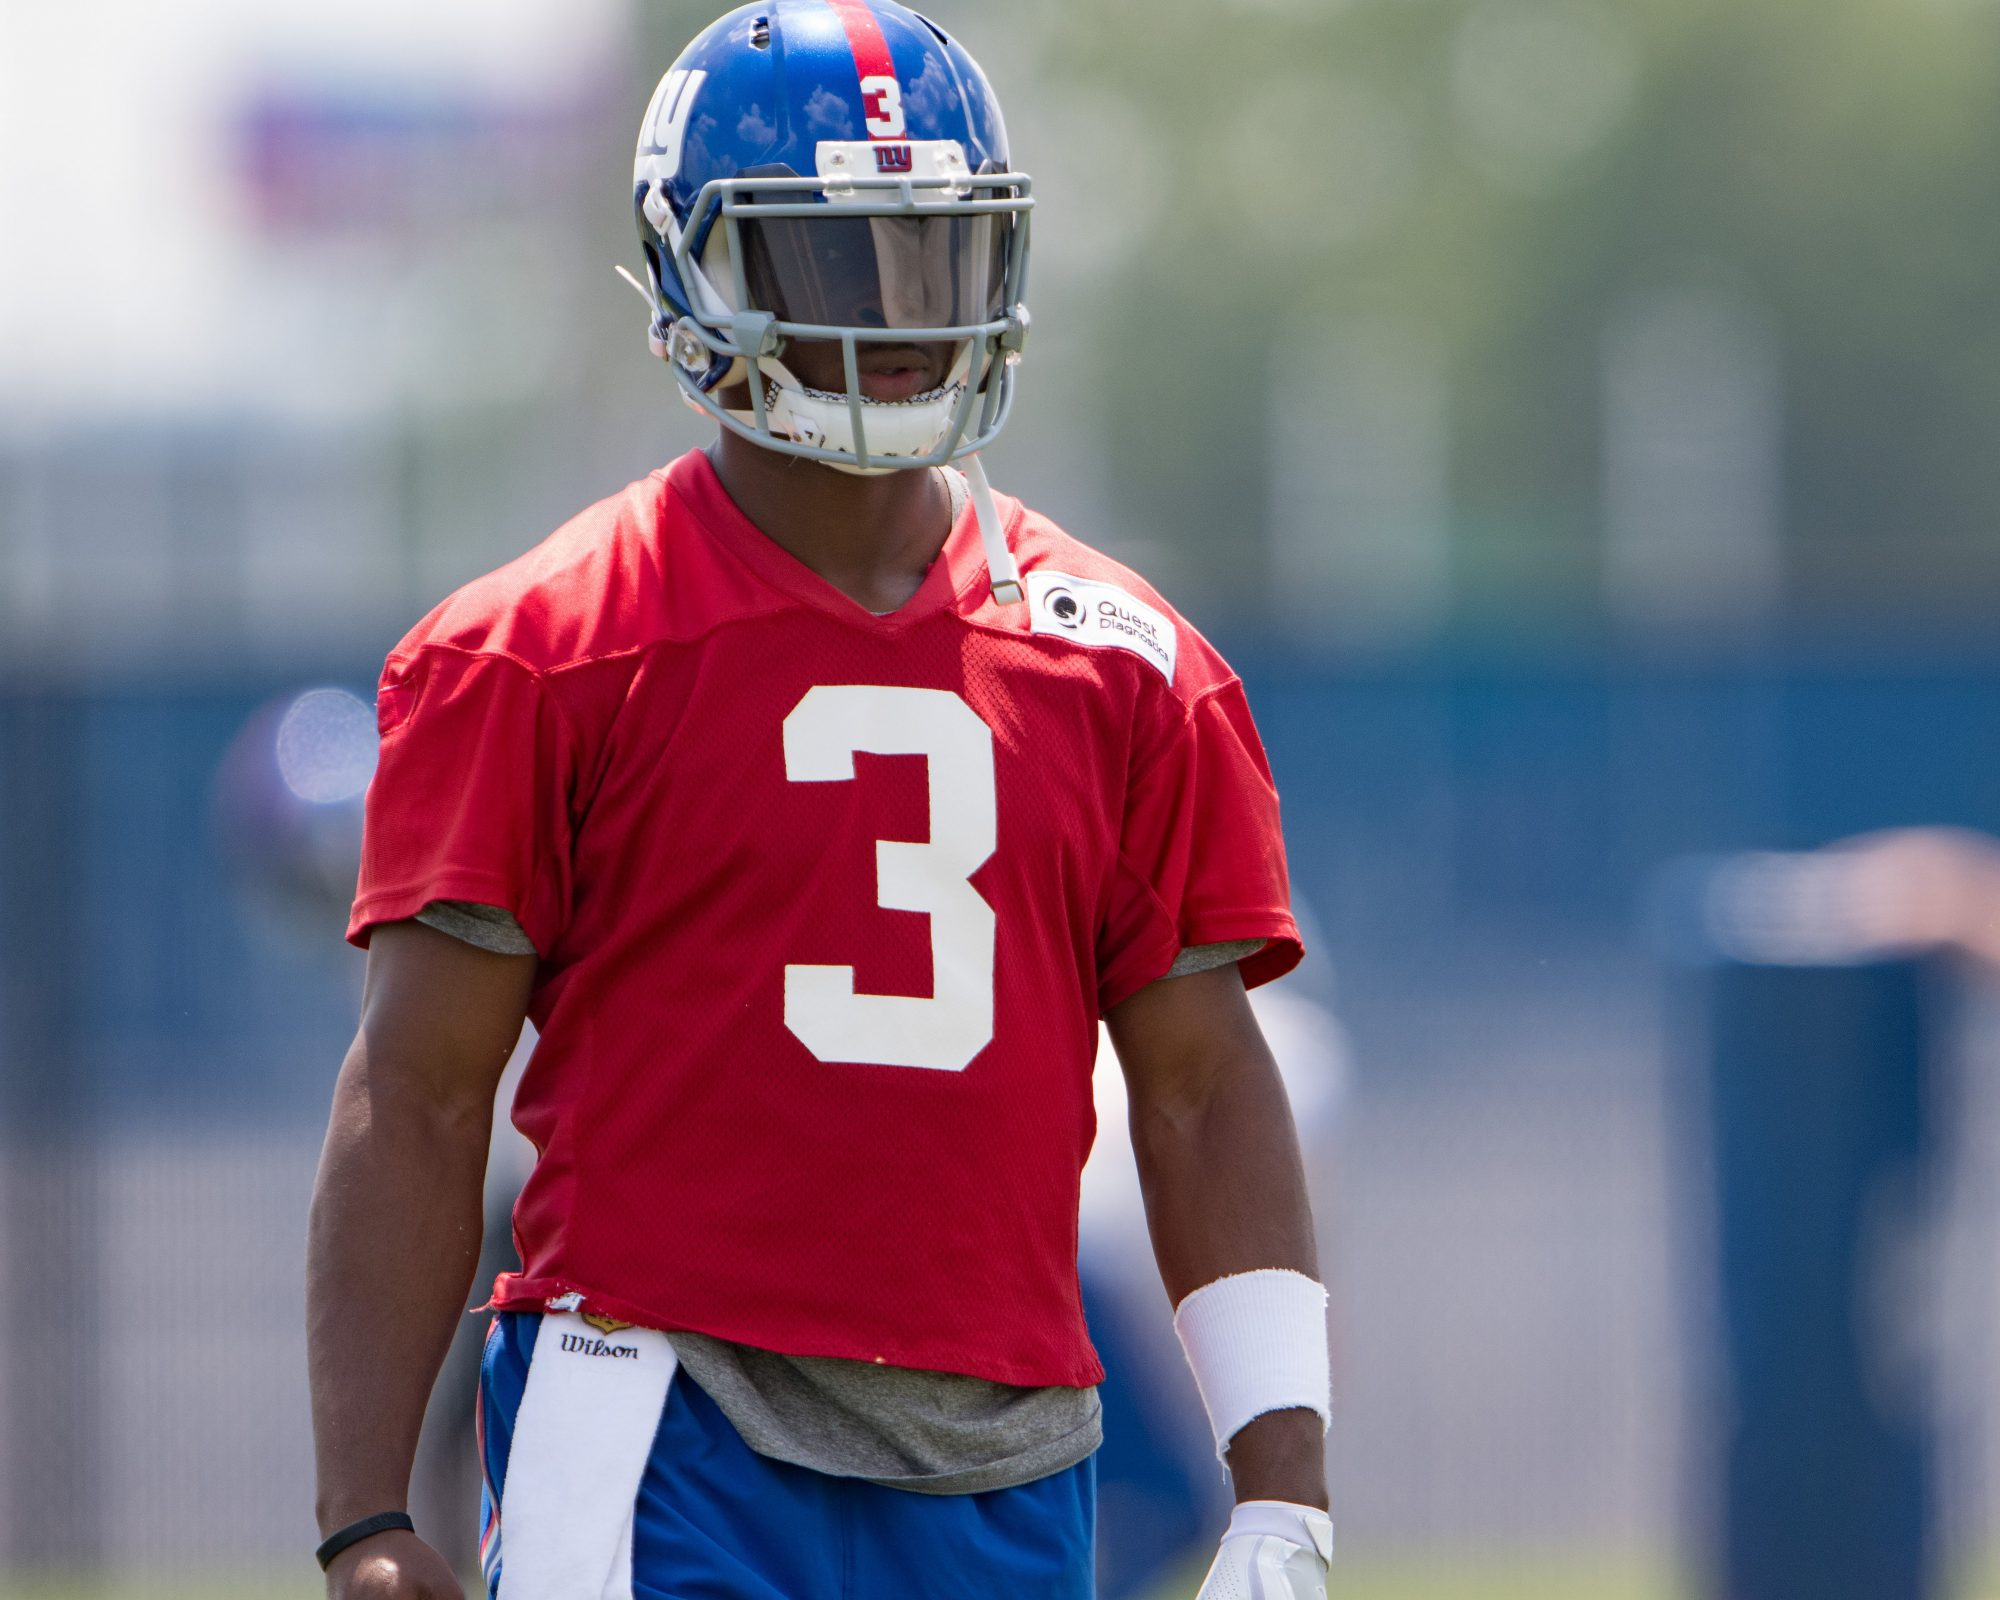 New York Giants: Geno Smith Has His Work Cut Out For Him To Make the Team 1